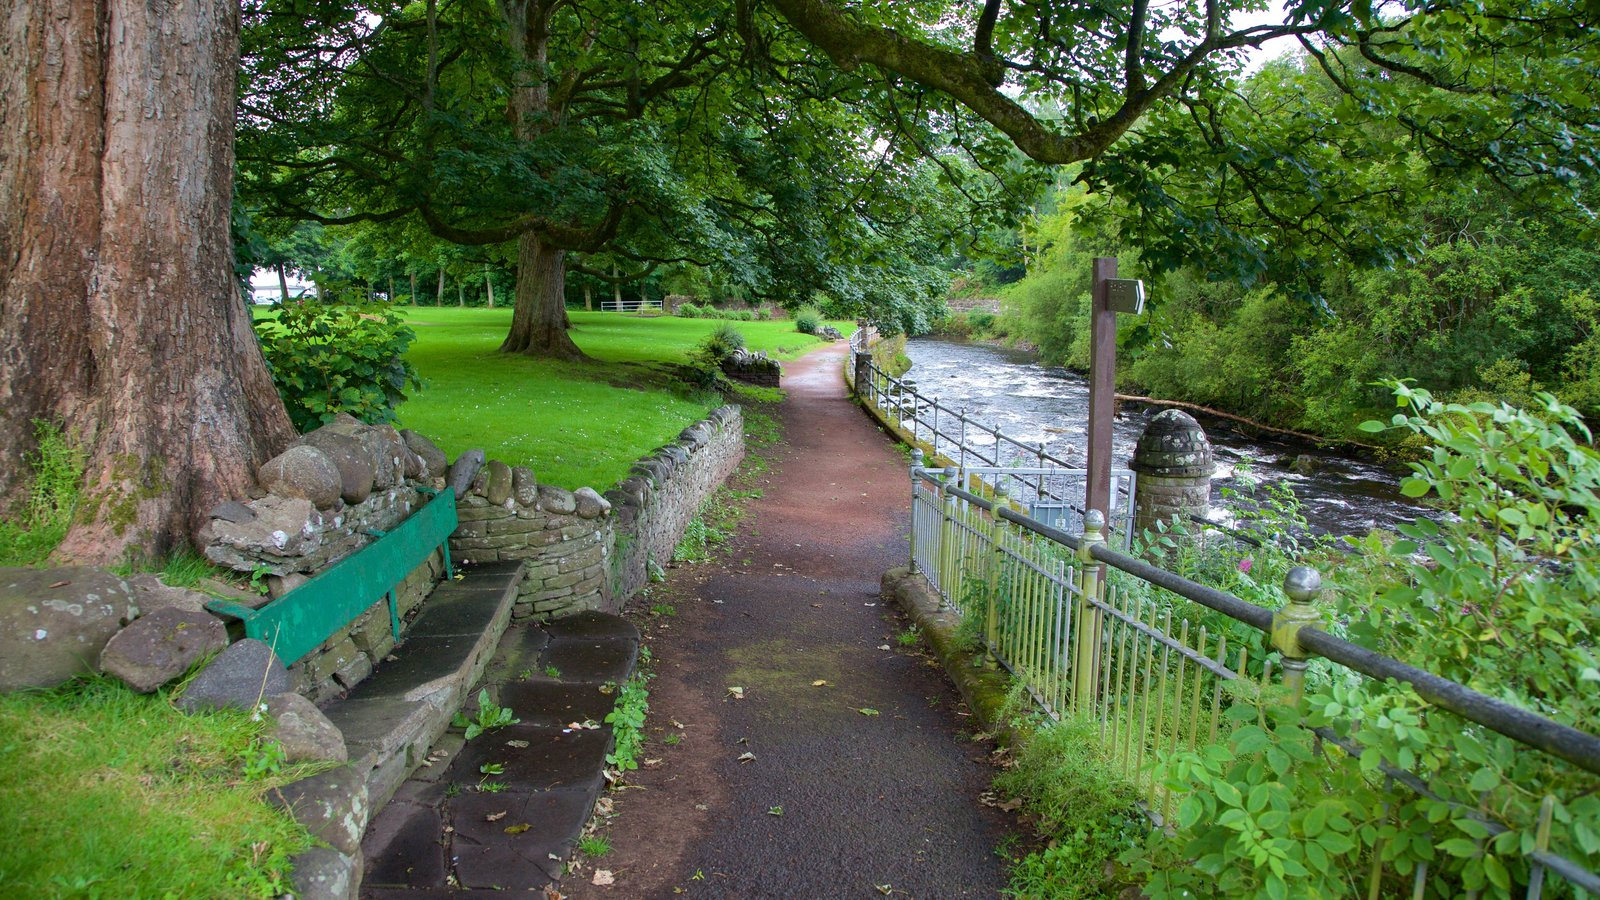 Dunblane which includes a river or creek and a garden